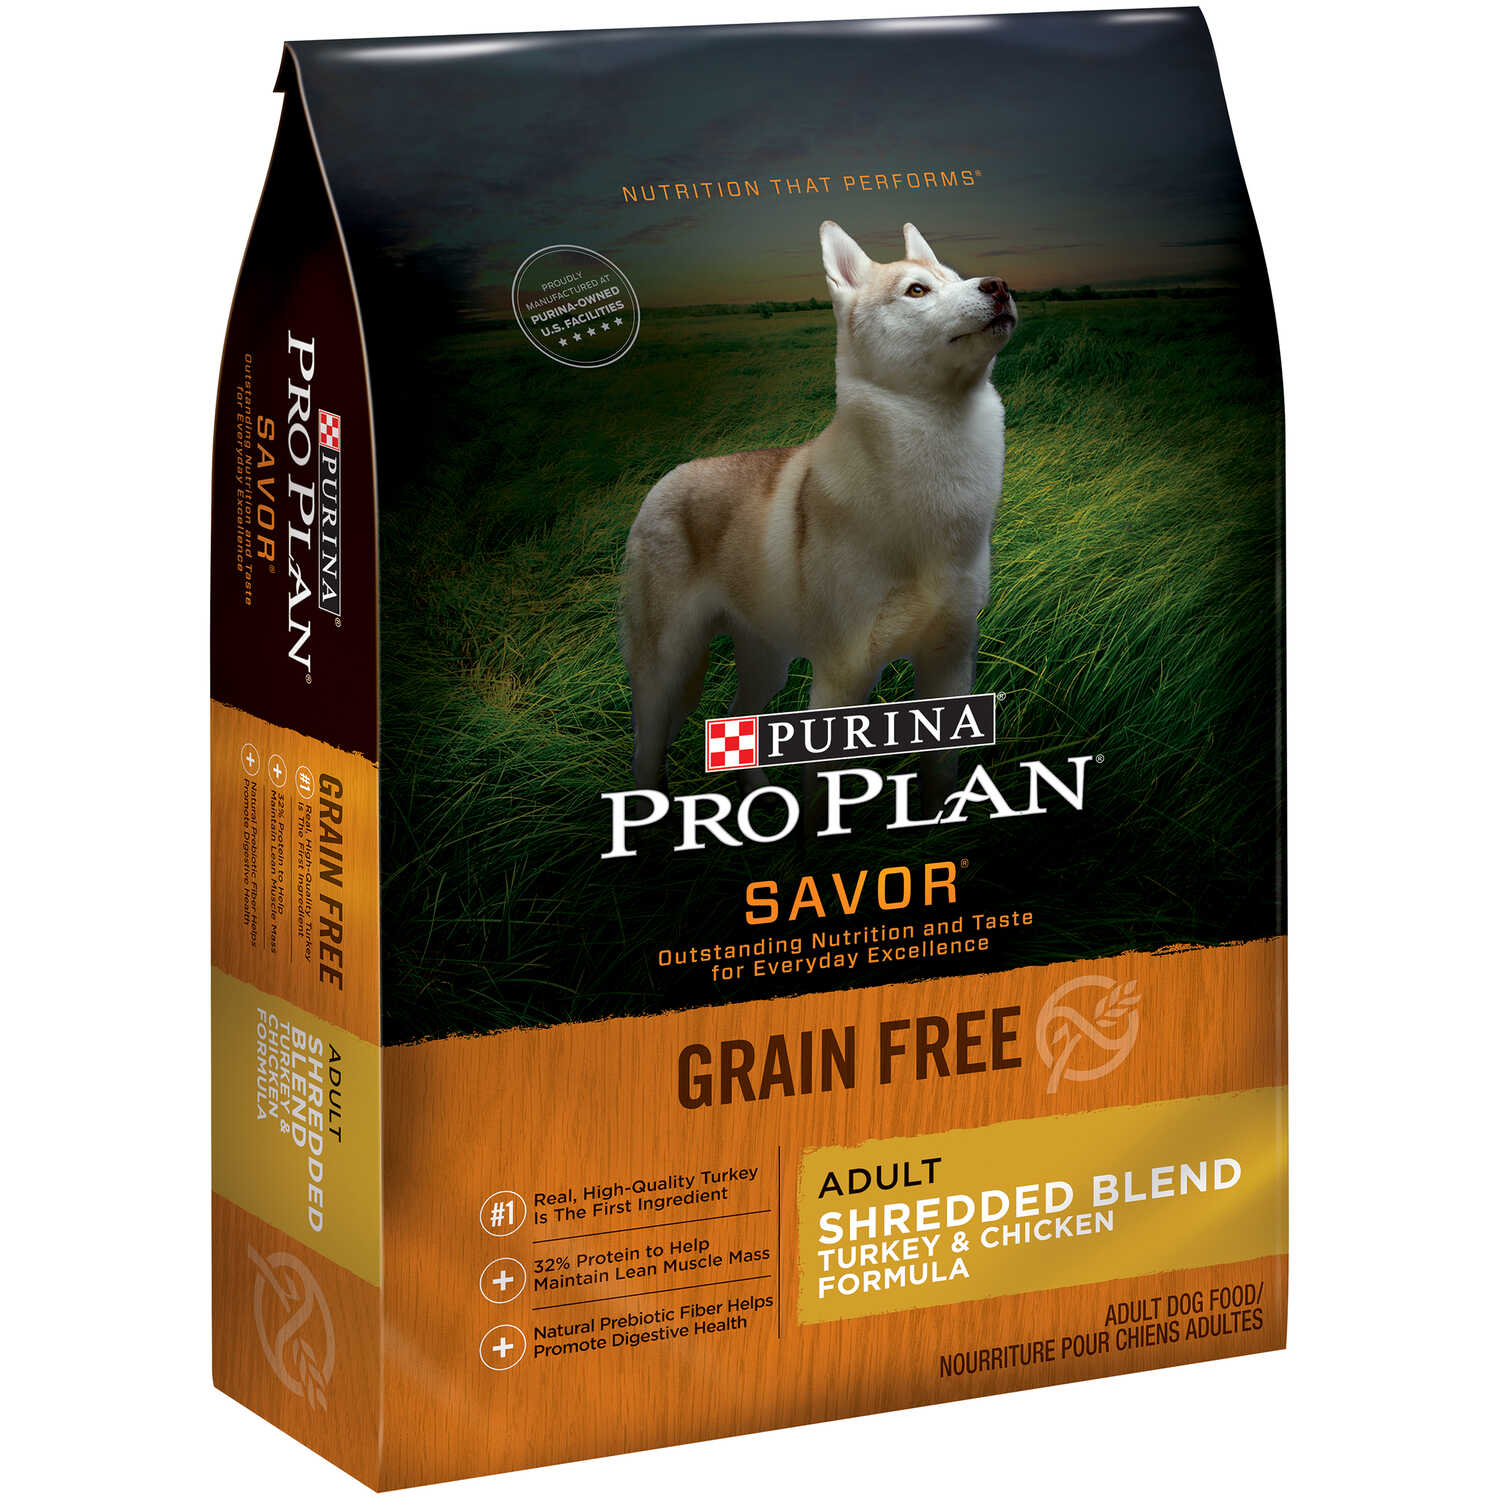 Purina  Pro Plan Savor  Turkey and Chicken  Dry  Dog  Food  Grain Free 4 lb.